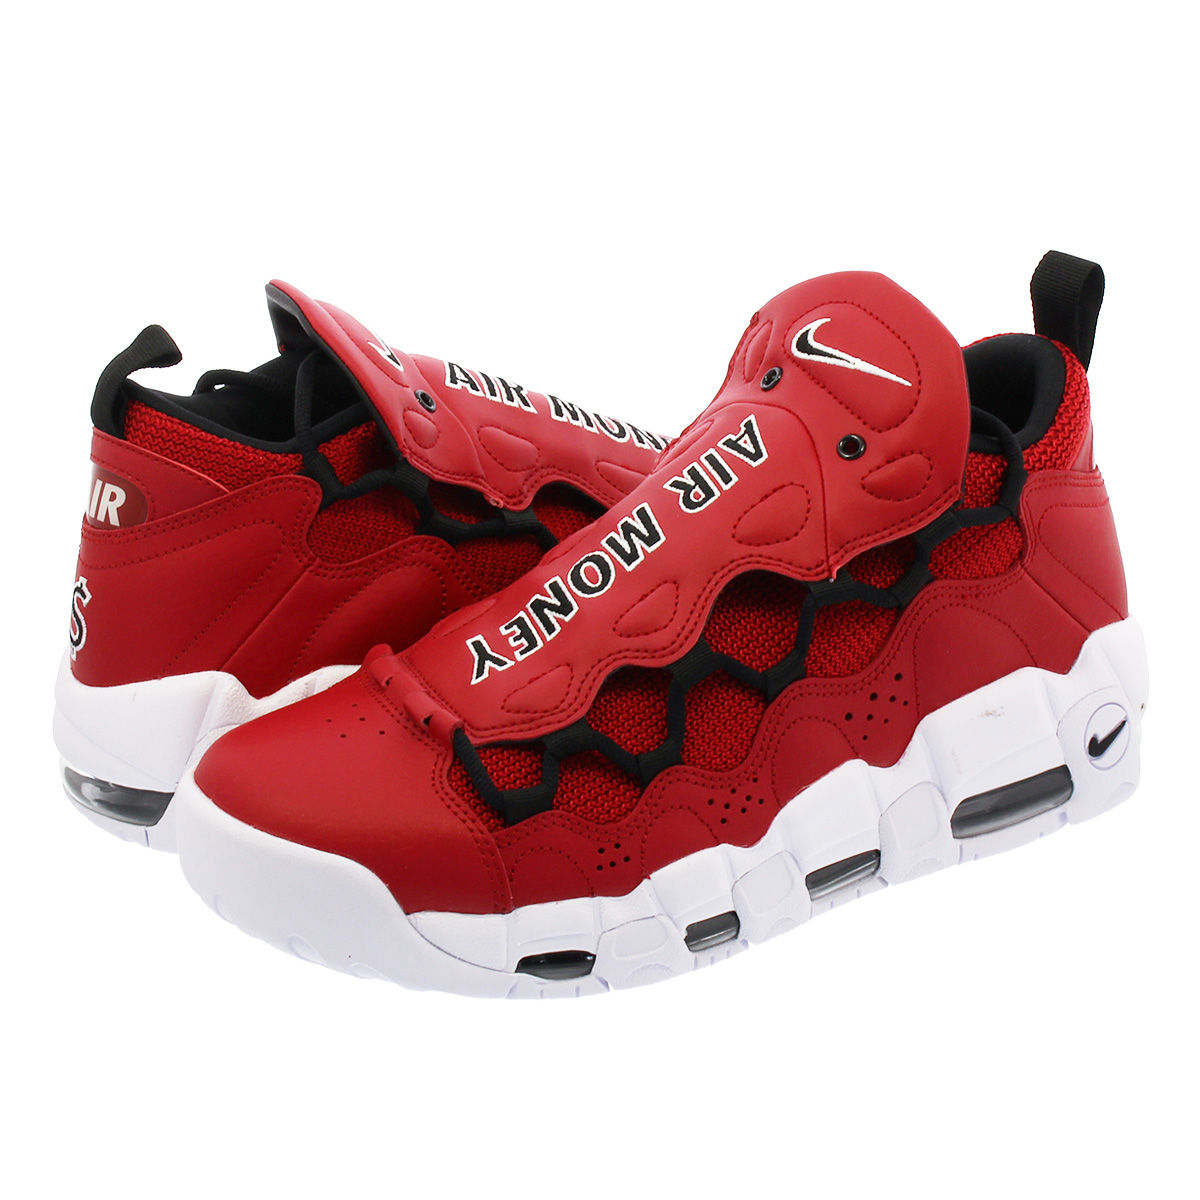 best service 49567 be544 SELECT SHOP LOWTEX: NIKE AIR MORE MONEY Nike air more money GYM RED/BLACK/ WHITE | Rakuten Global Market